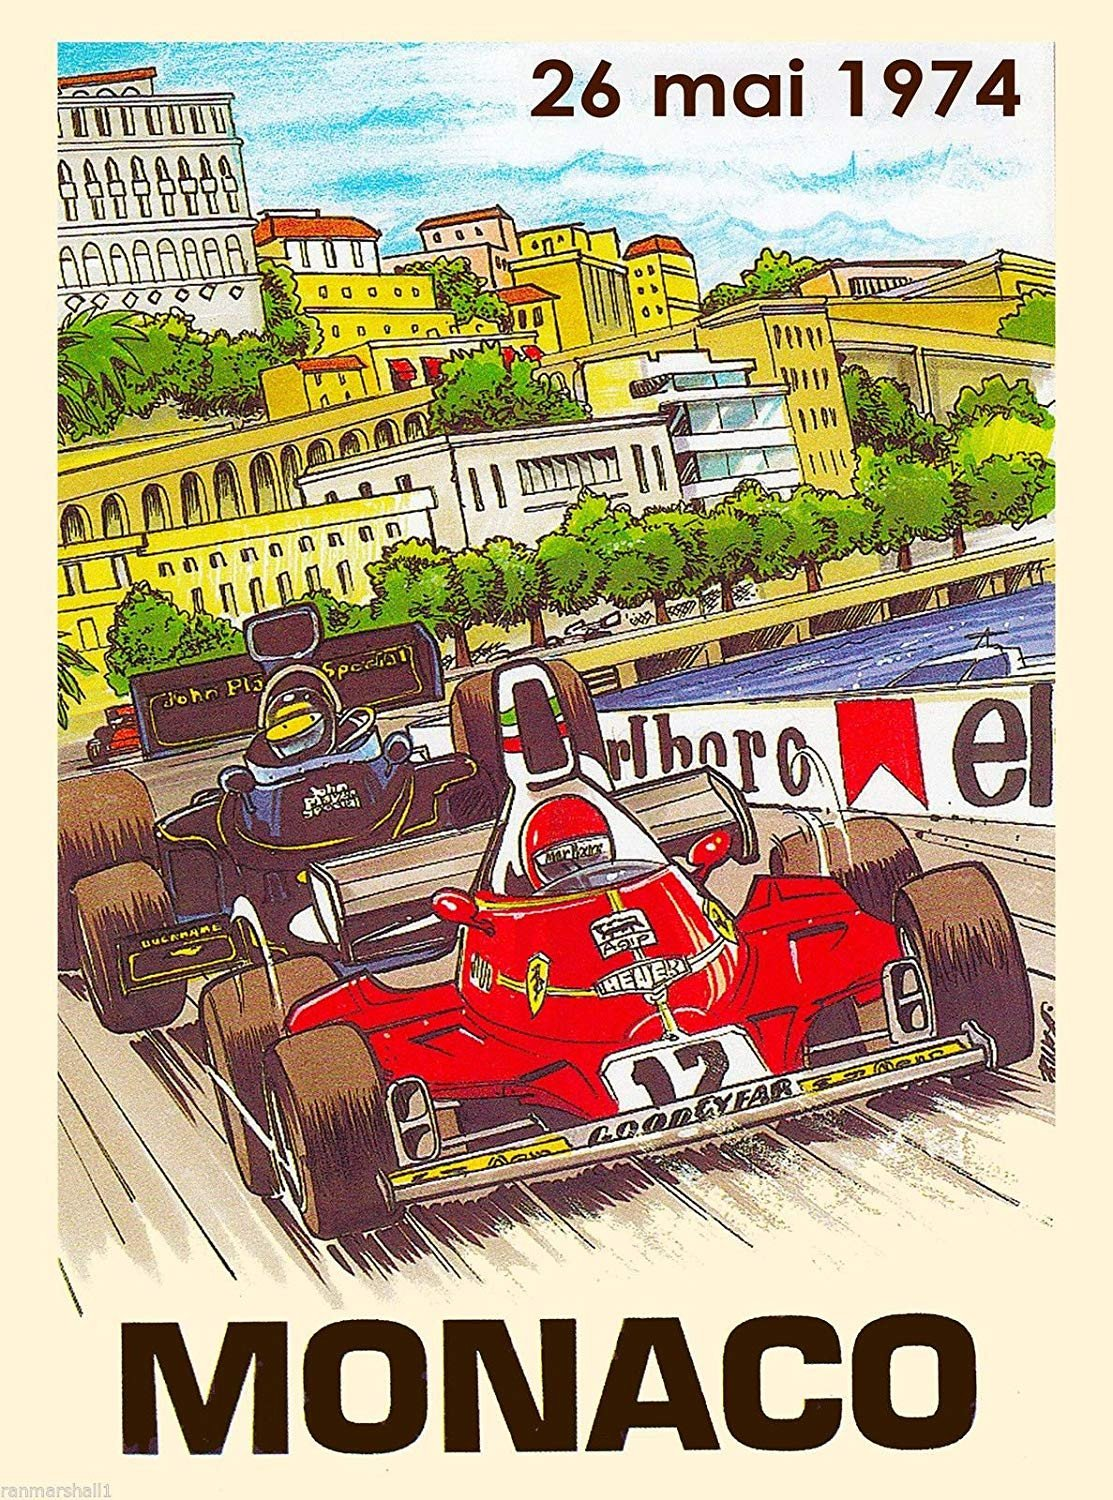 Race Car Bedroom Decor Beautiful A Slice In Time 1974 Monaco Grand Prix Automobile Race Car Travel Advertisement Vintage Collectible Wall Decor Poster Print Measures 10 X 13 5 Inches